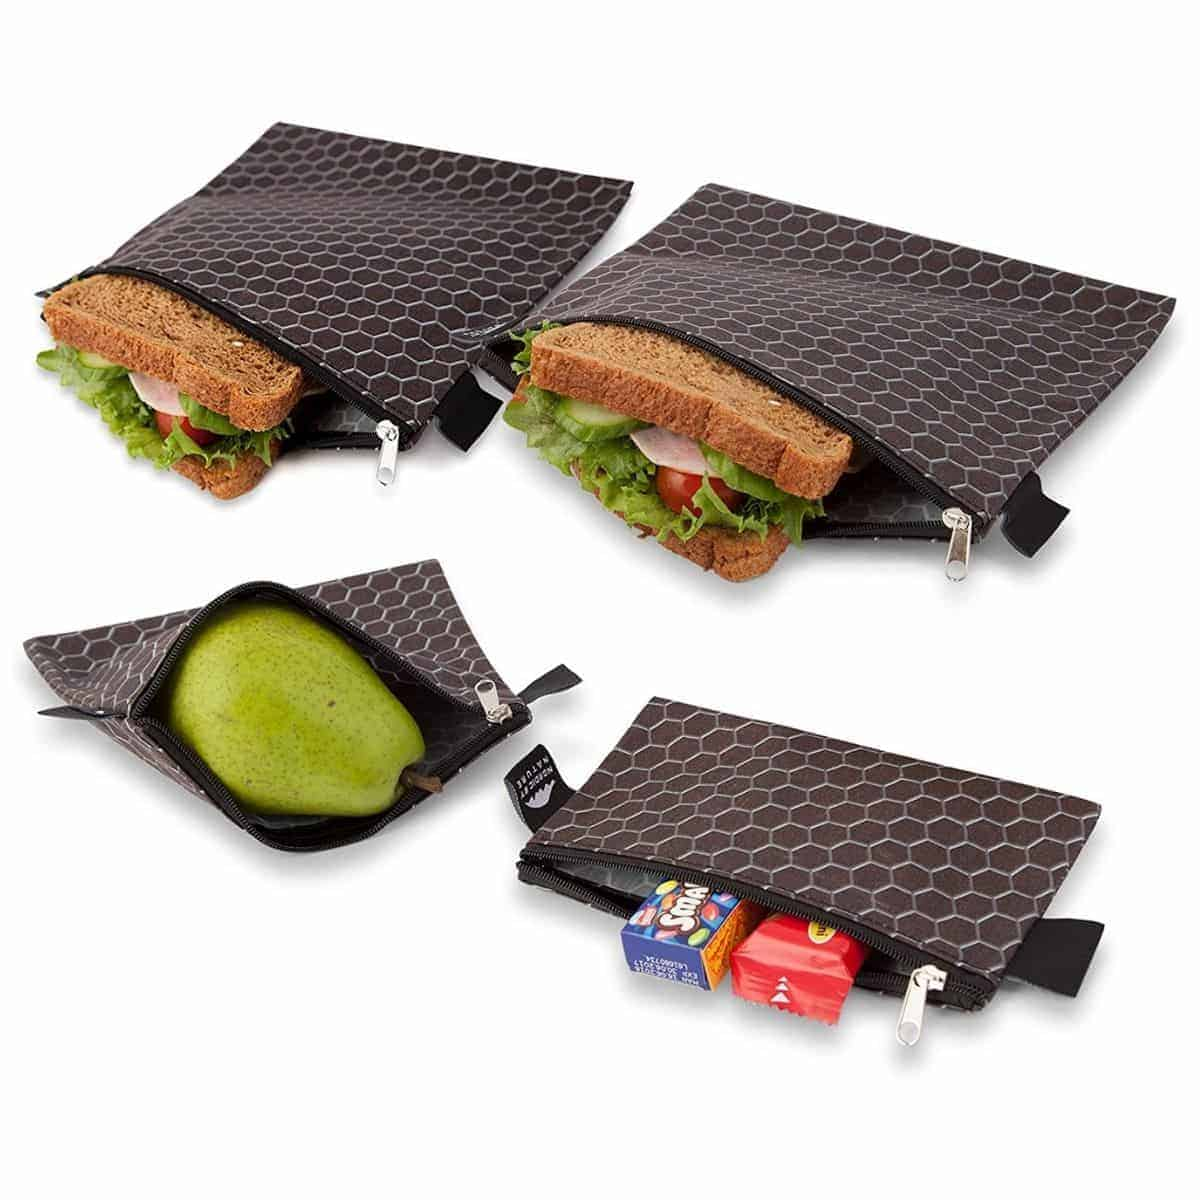 Black fabric reusable sandwich and snack bags with a zipper.